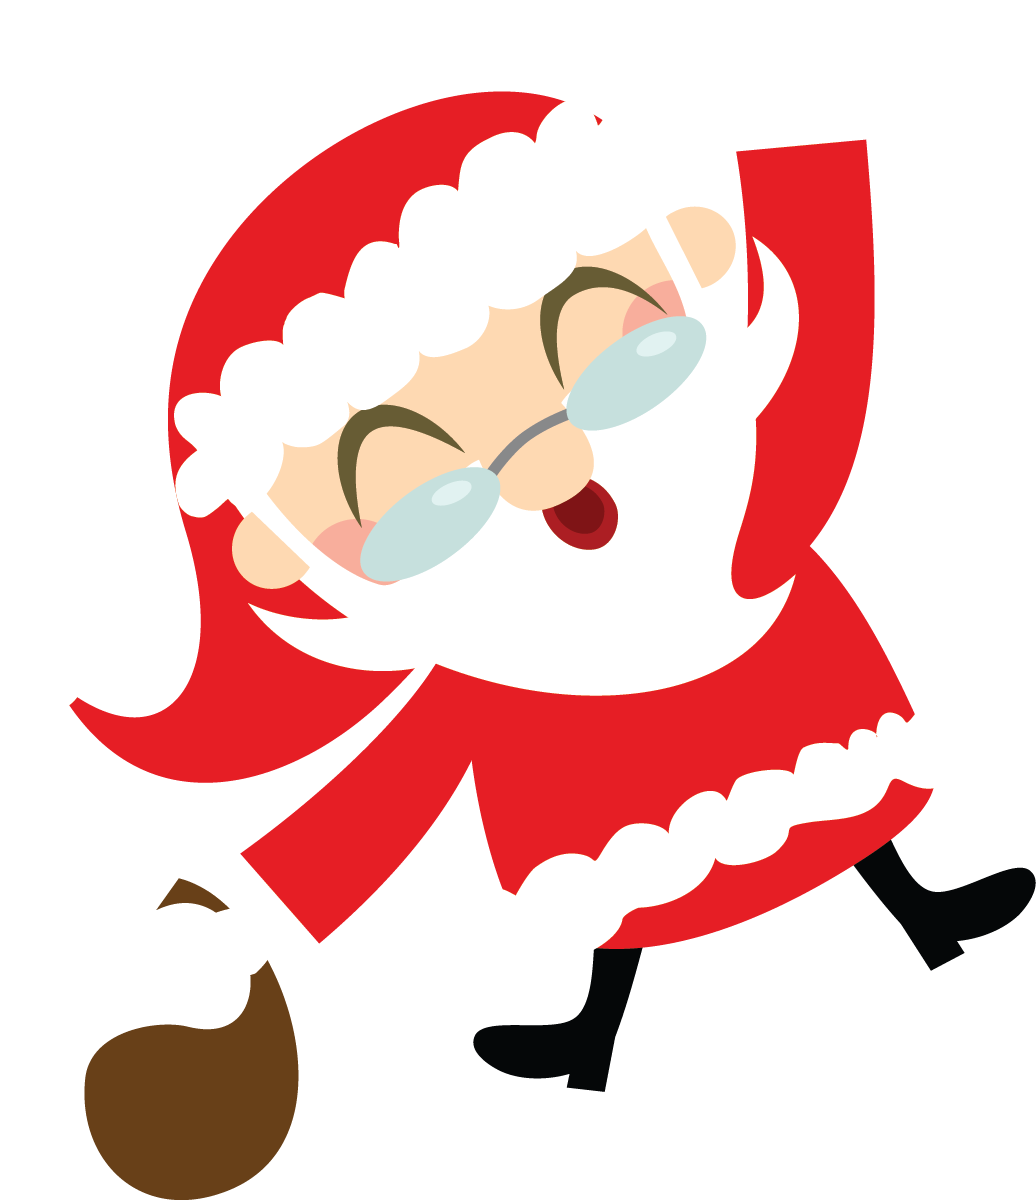 Holiday clipart Clip art Holiday clipart free